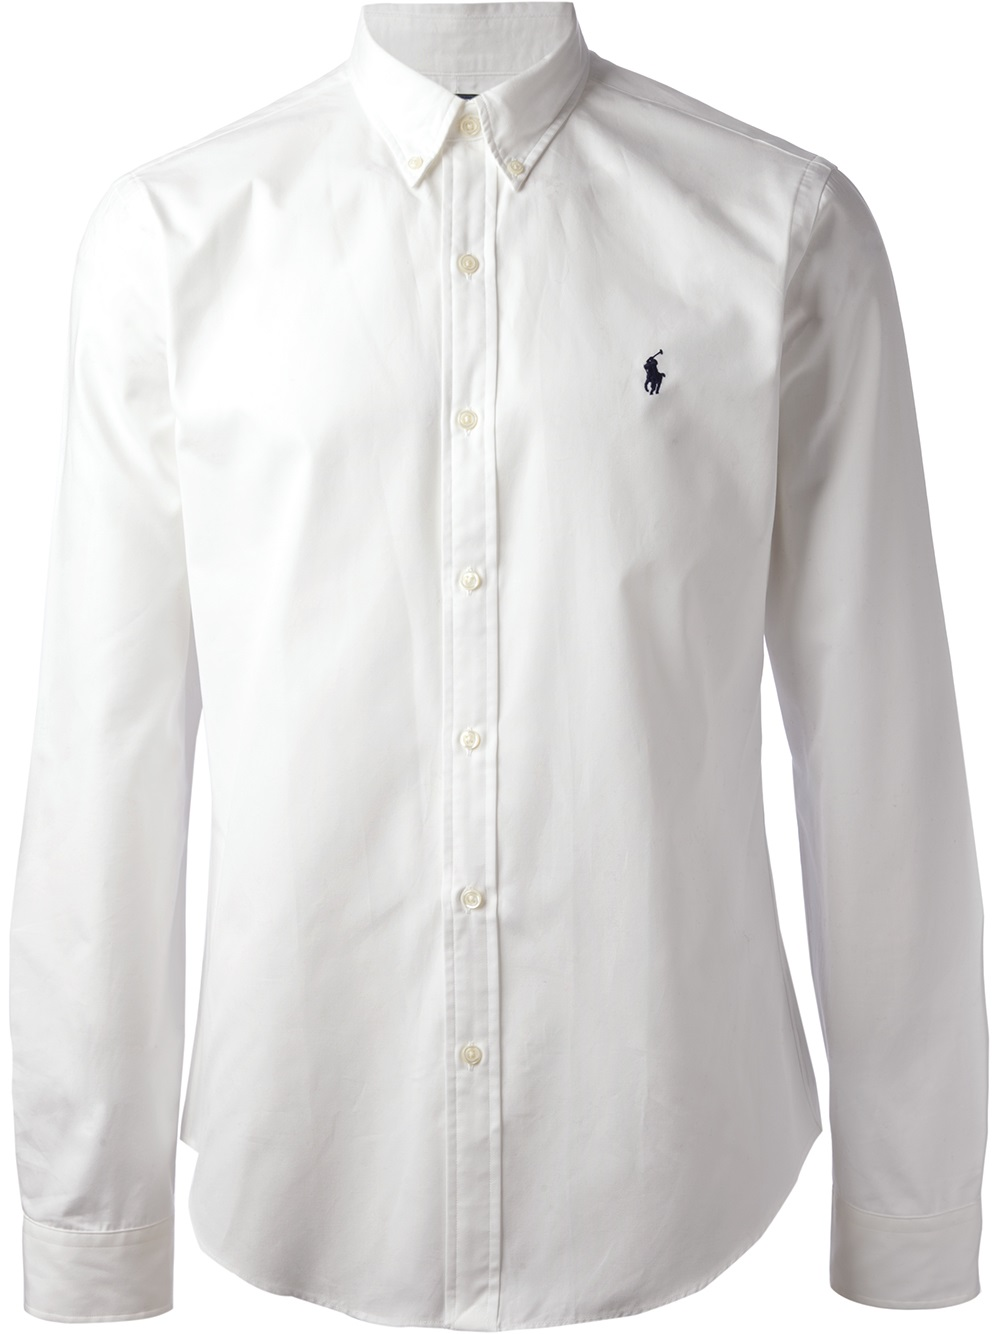 Lyst Polo Ralph Lauren Long Sleeve Shirt In White For Men